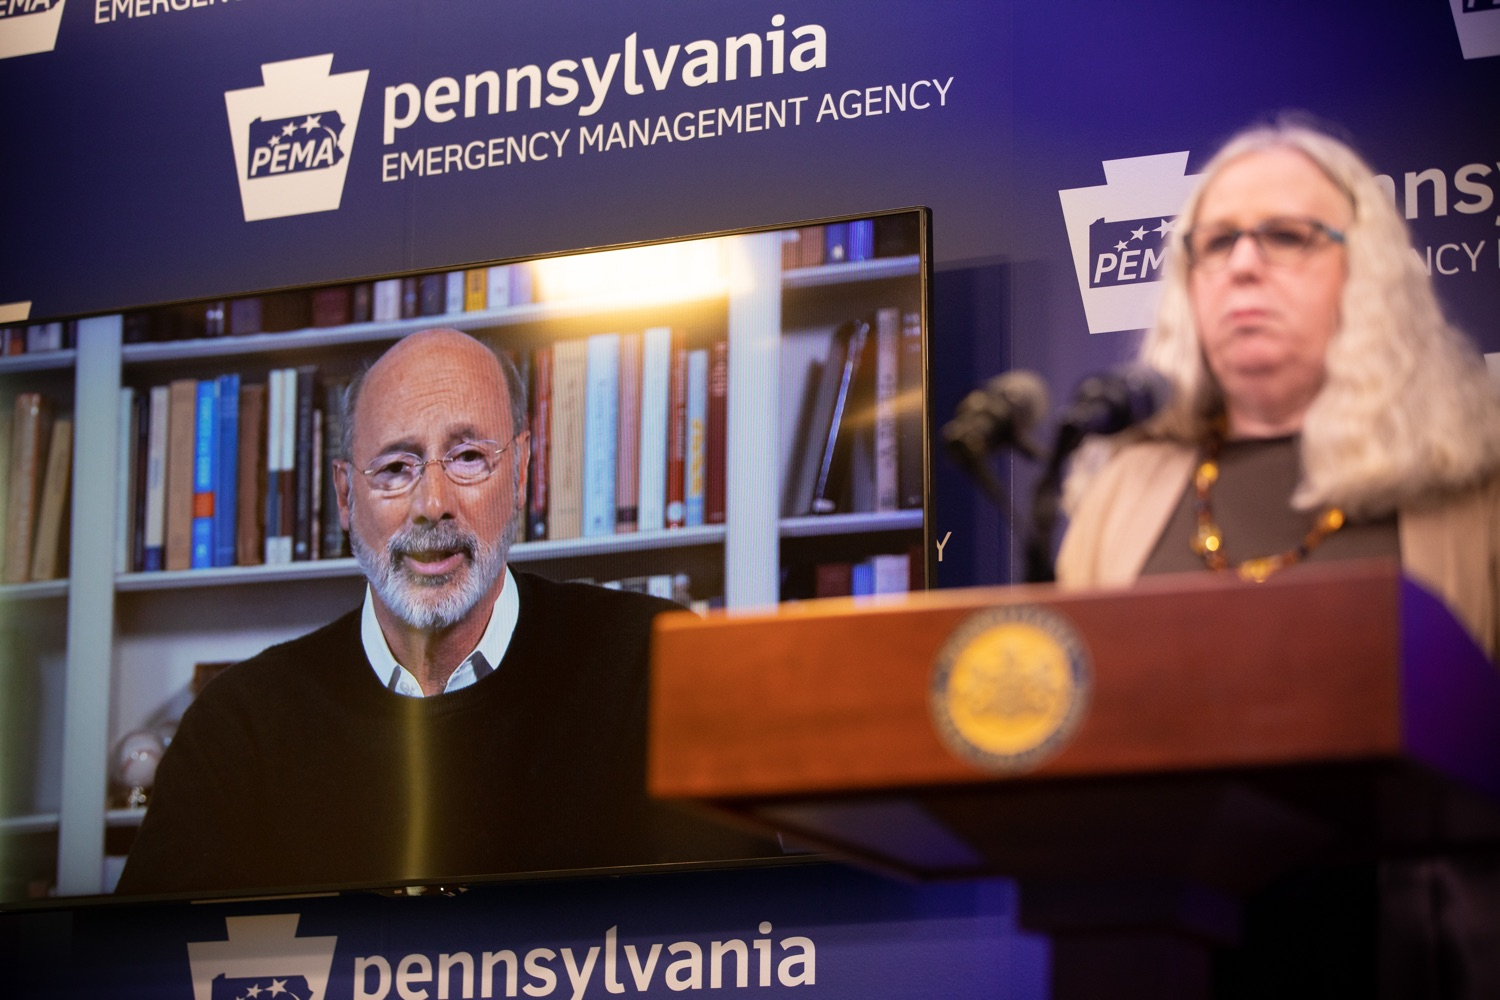 "<a href=""https://filesource.wostreaming.net/commonwealthofpa/photo/17897_gov_doh_update_dz_0010.JPG"" target=""_blank"">⇣ Download Photo<br></a>Governor Tom Wolf speaking by video feed while Secretary of Health Dr. Rachel Levine stands at the podium during the virtual press conference. The Pennsylvania Department of Health today confirmed as of 12:00 a.m., March 20, that there are 83 additional positive cases of COVID-19 reported, bringing the statewide total to 268. County-specific information and a statewide map are available here. All people are either in isolation at home or being treated at the hospital.  Harrisburg, PA- March 20, 2020"